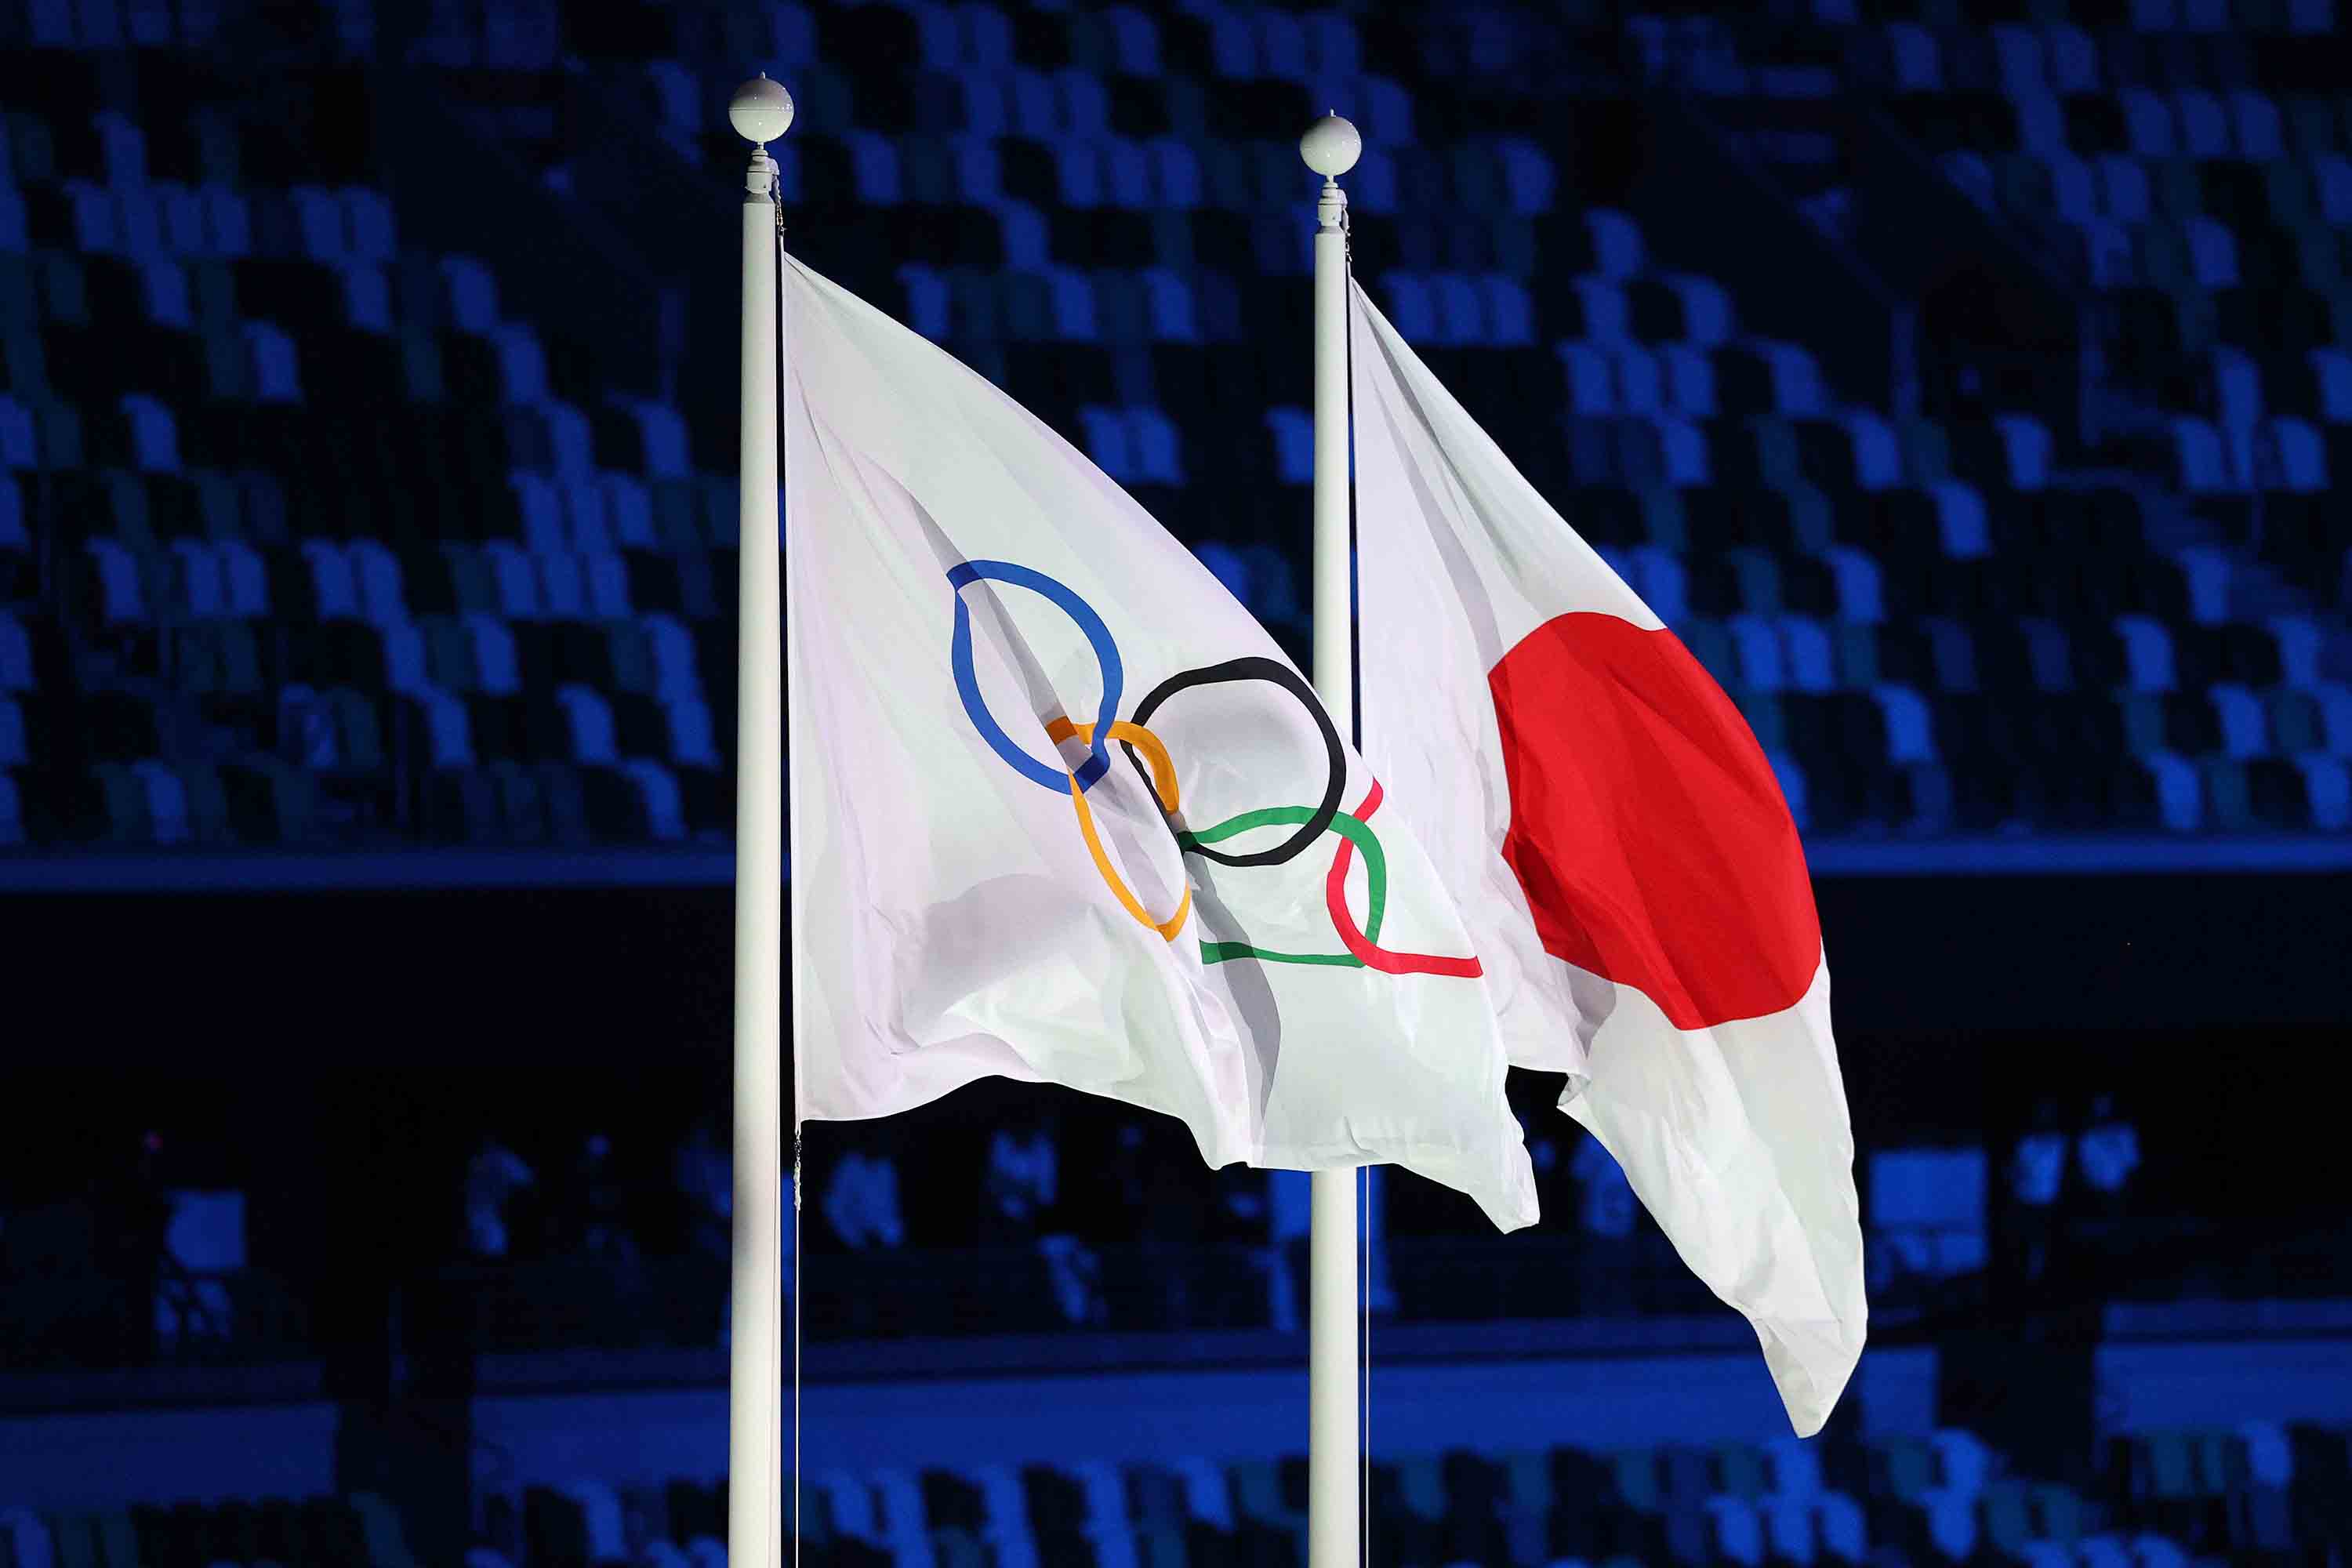 The Olympic flag is raised alongside the Japanese flag during the Opening Ceremony.